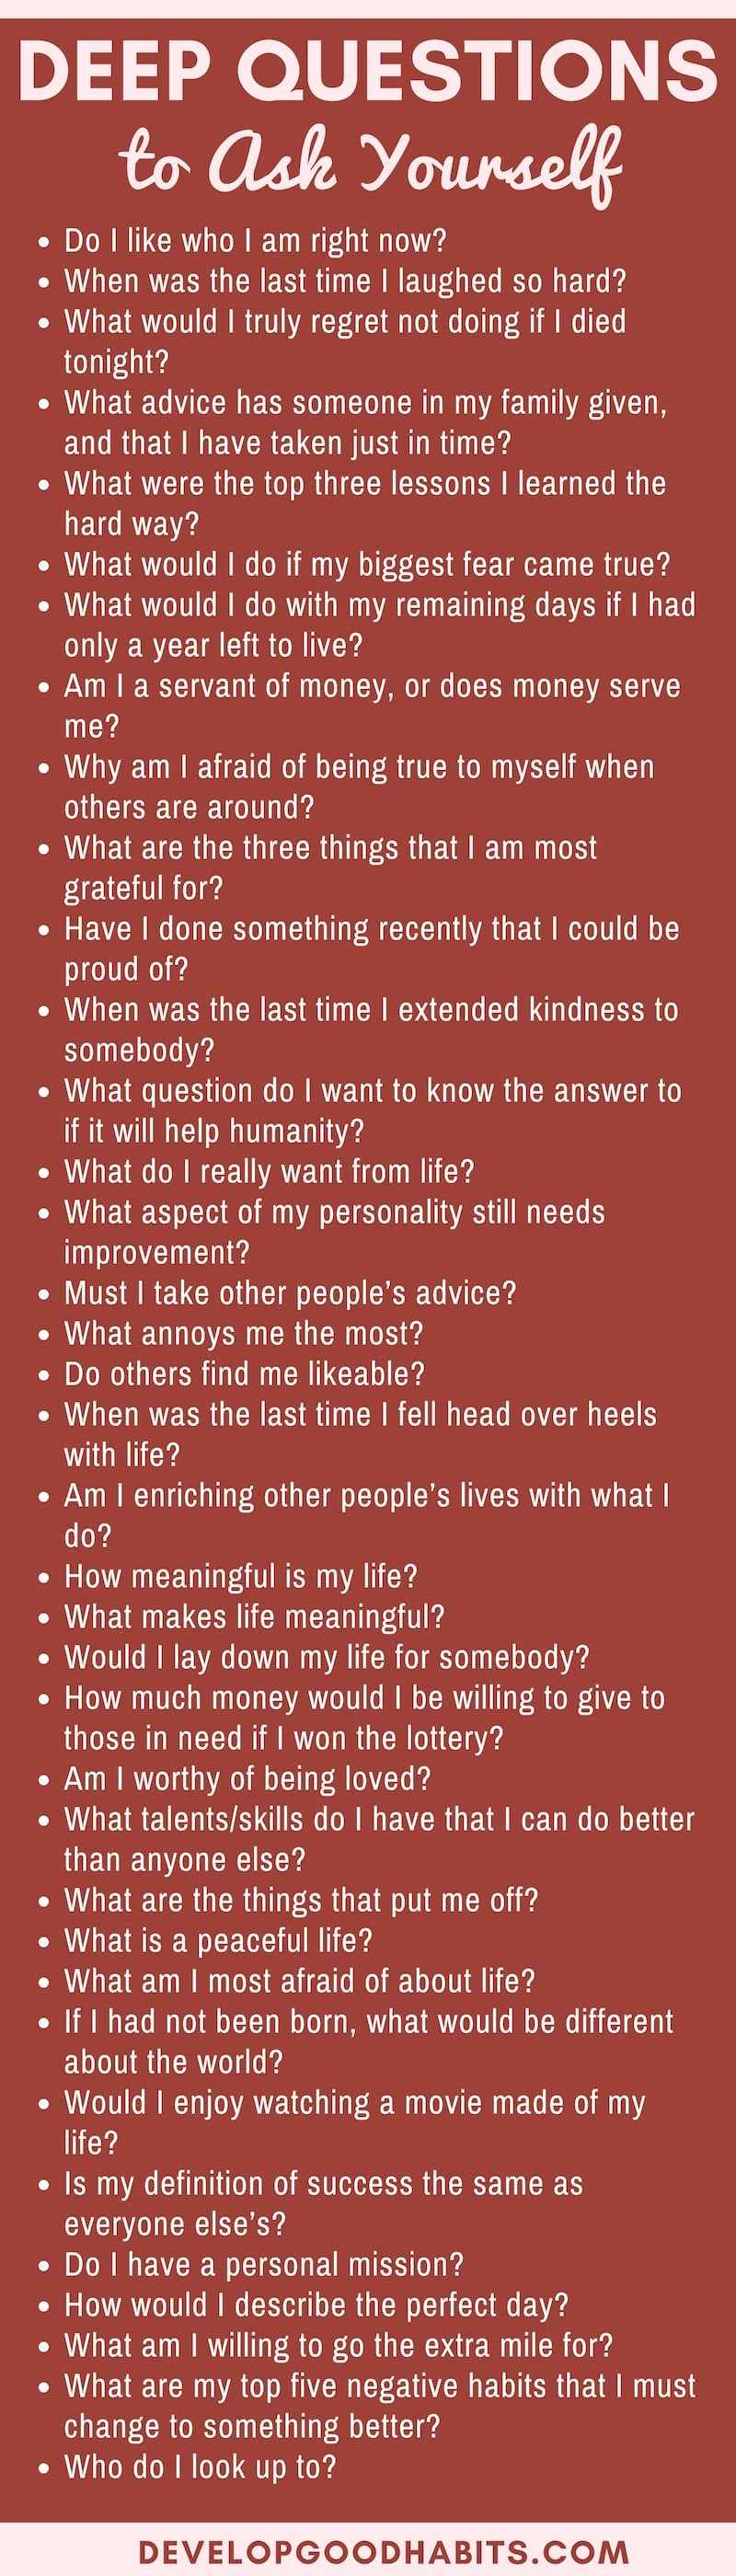 Personal questions to ask a guy you like